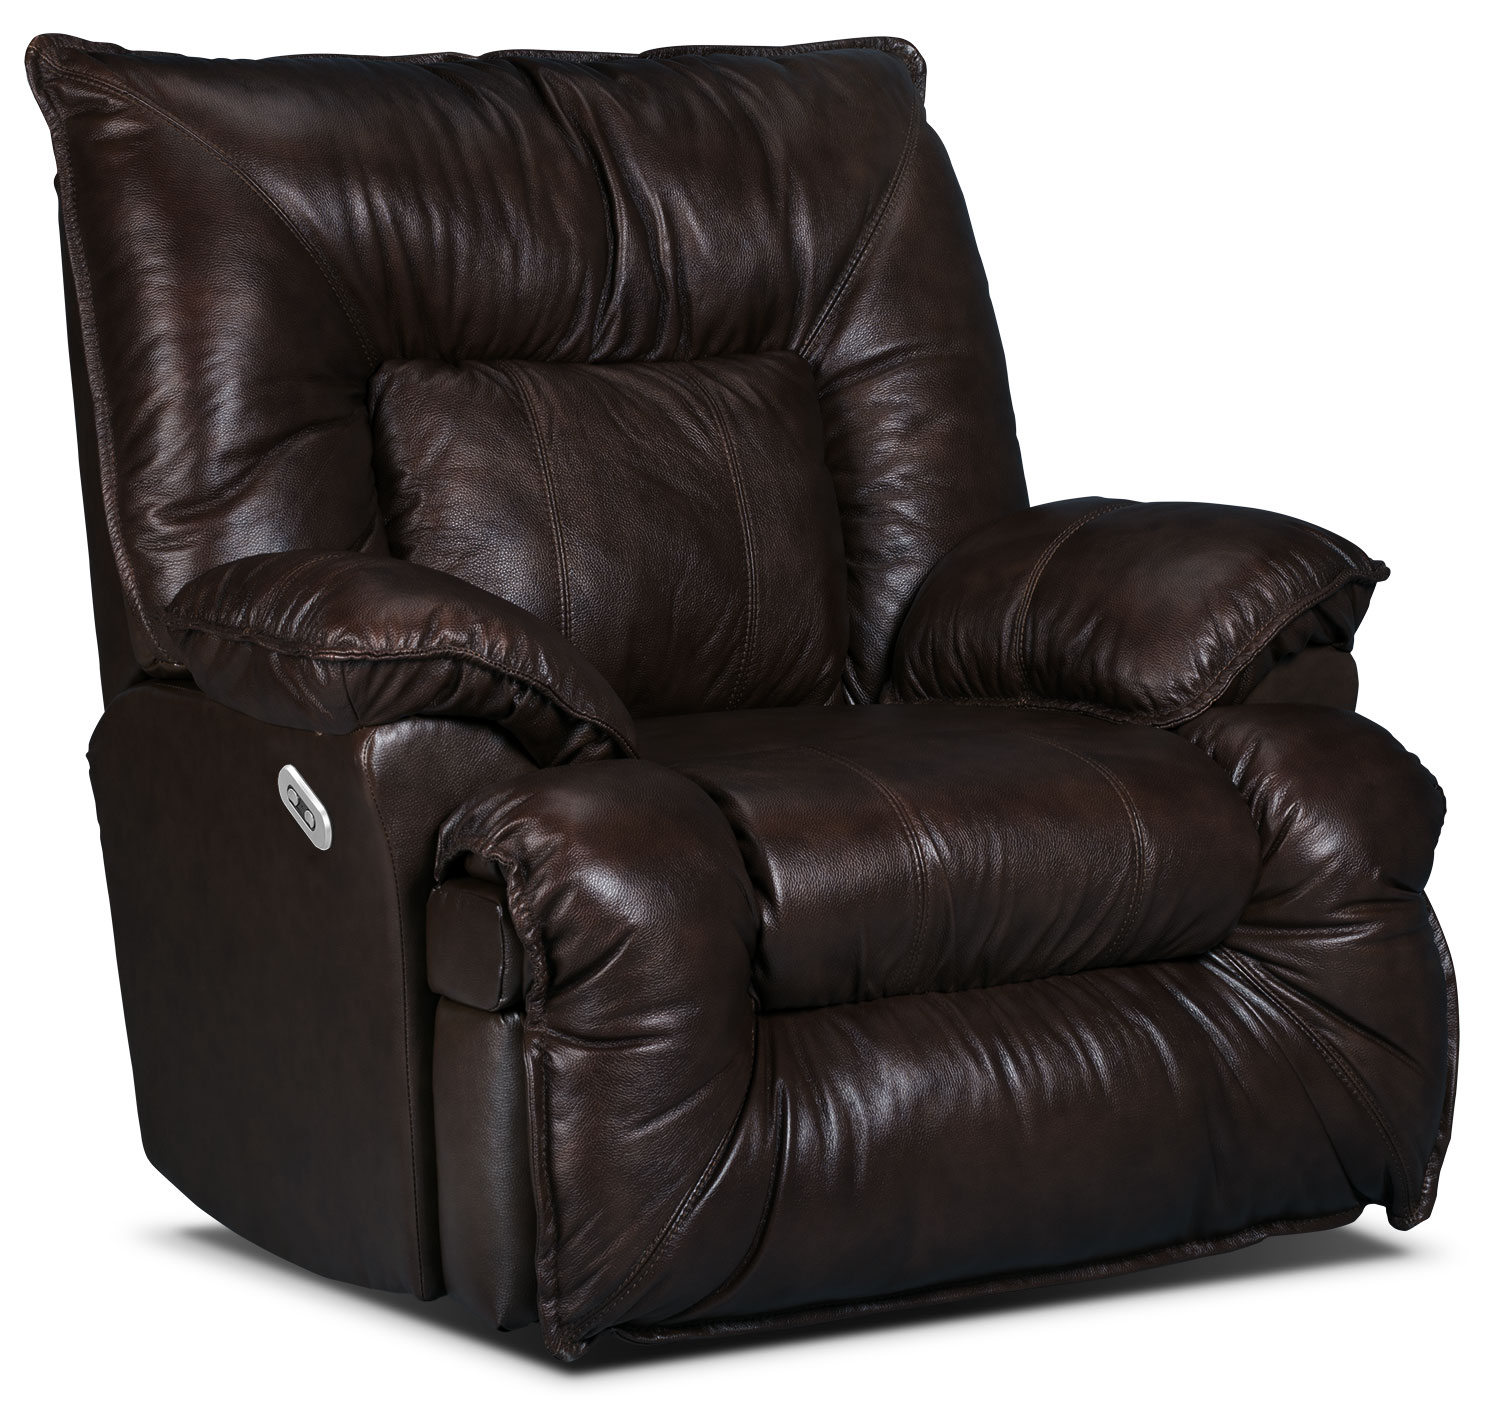 Designed2B Recliner 7726 Leather-Look Fabric Power Lay-Flat Recline Chair - Java